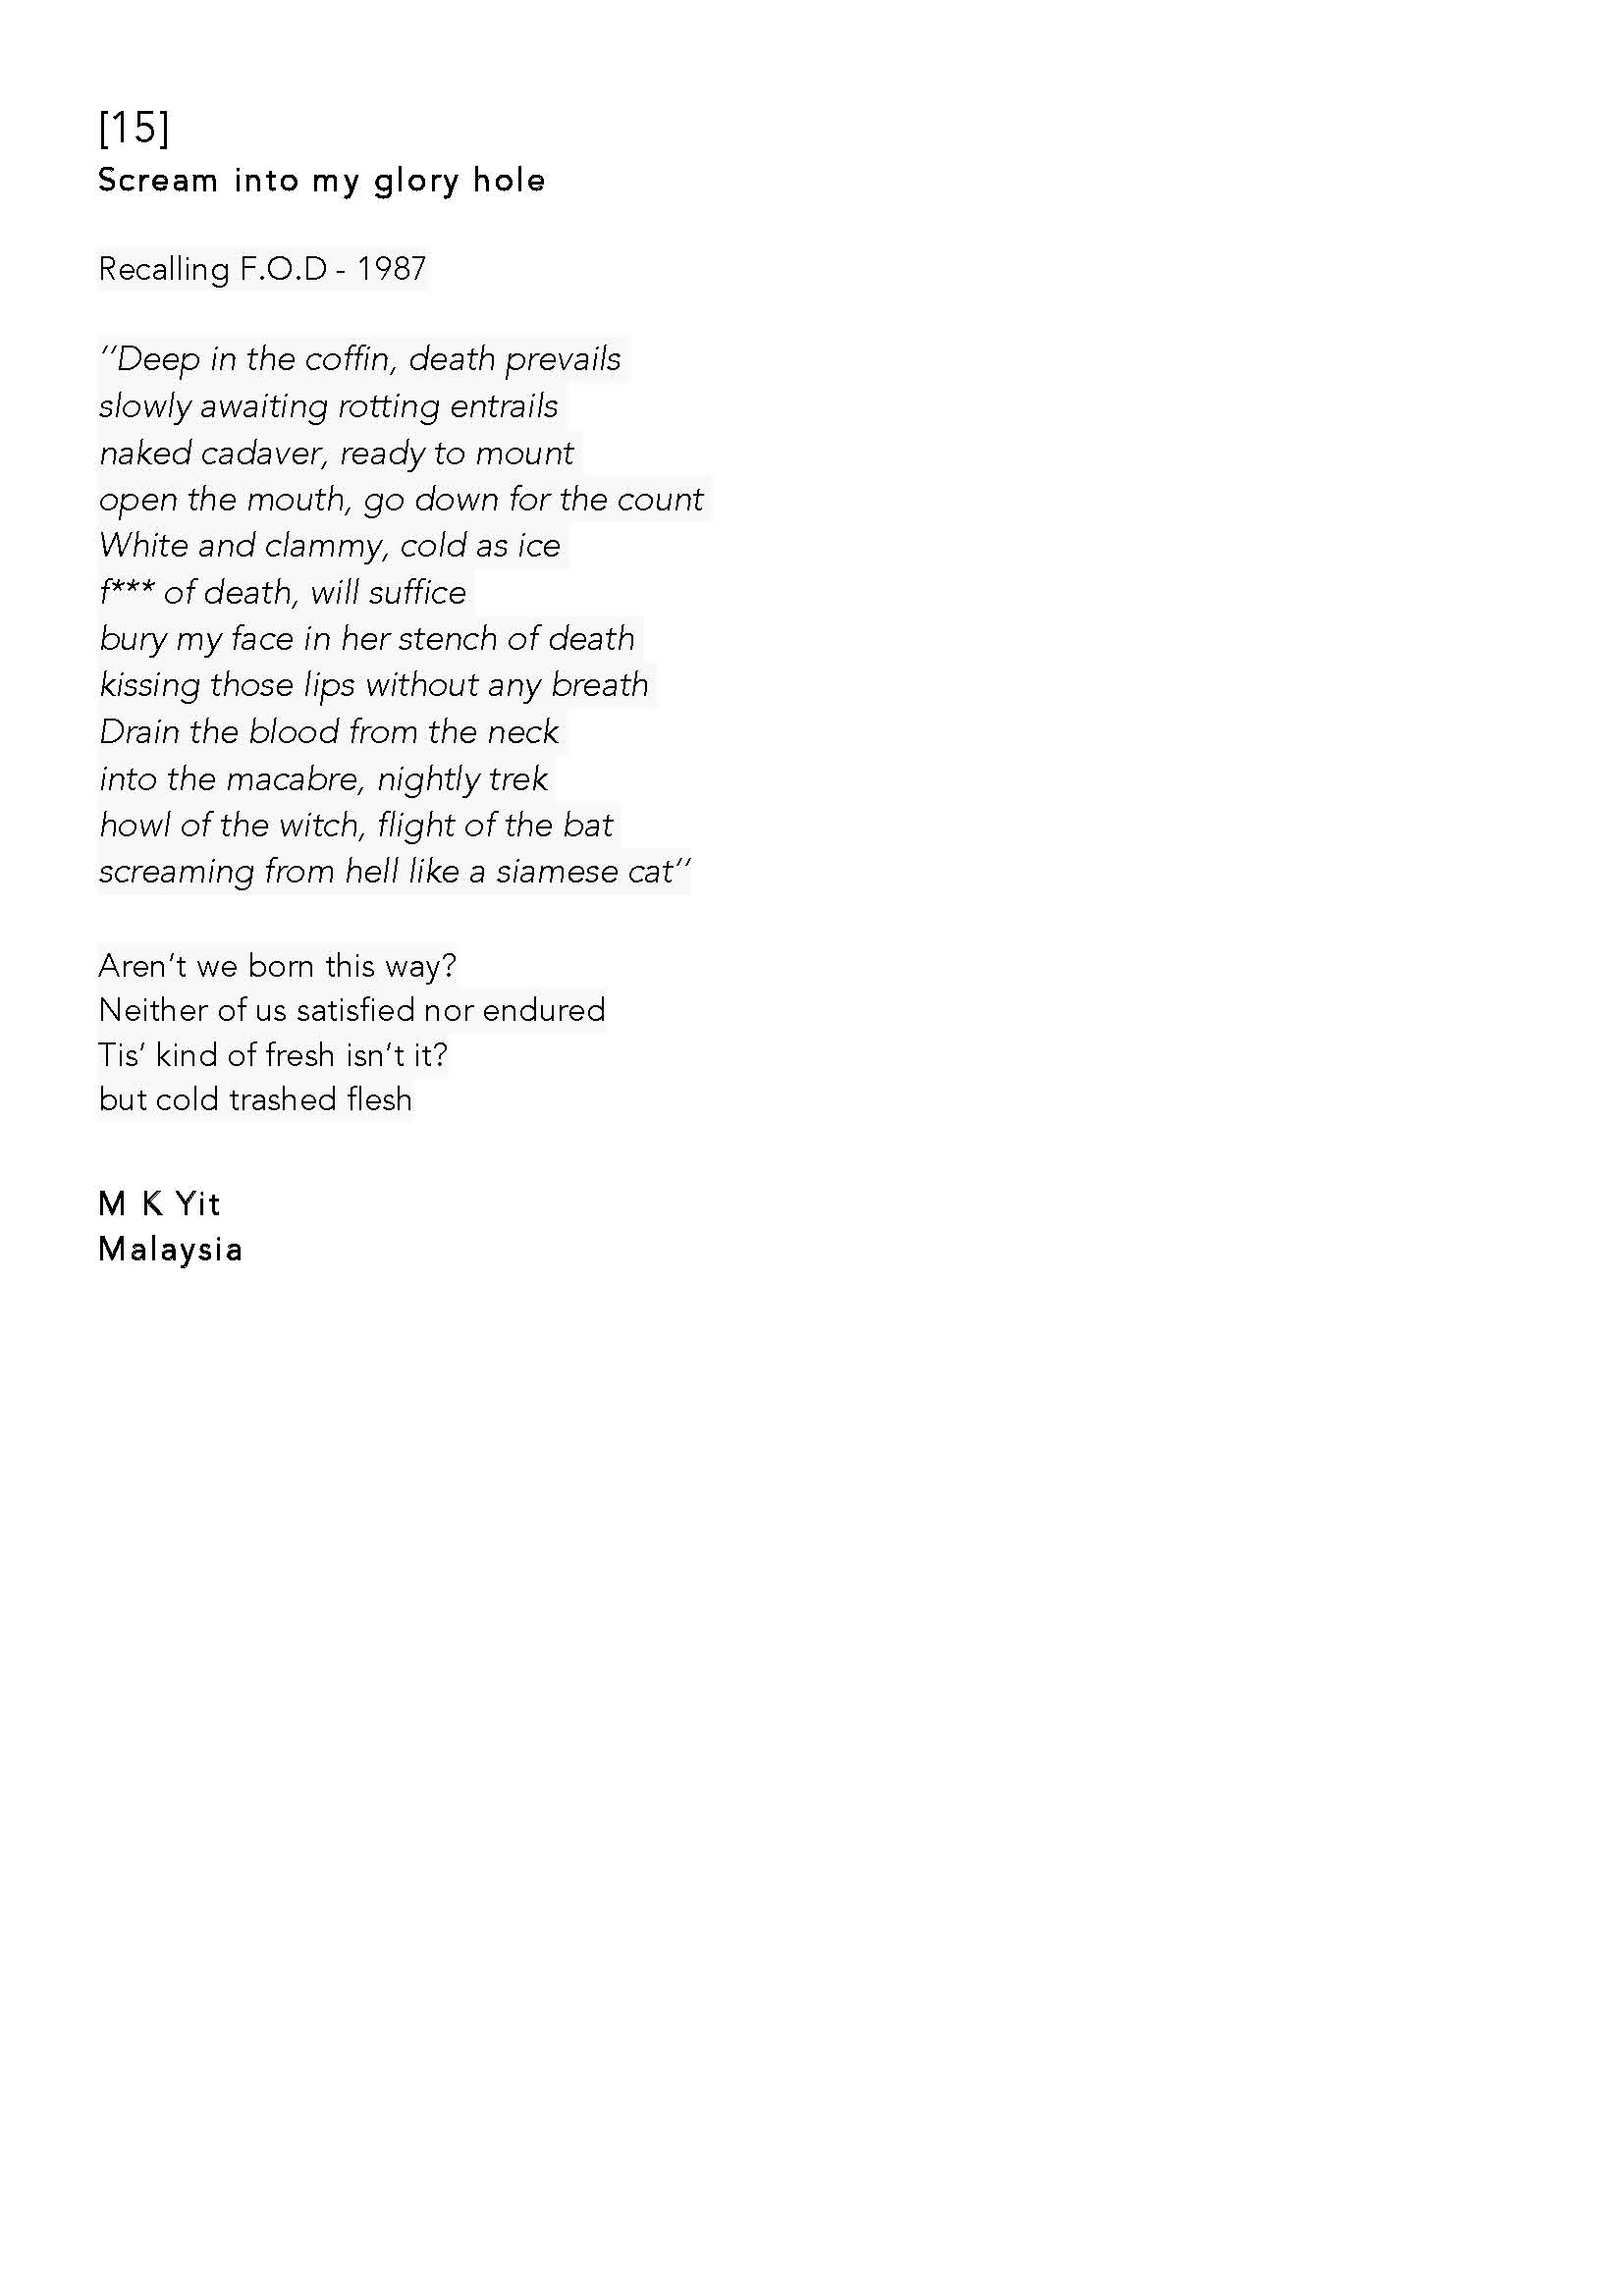 Poetry Collection - Everyone can Poetry _ For 12 May 2014 - R2_Page_15.jpg